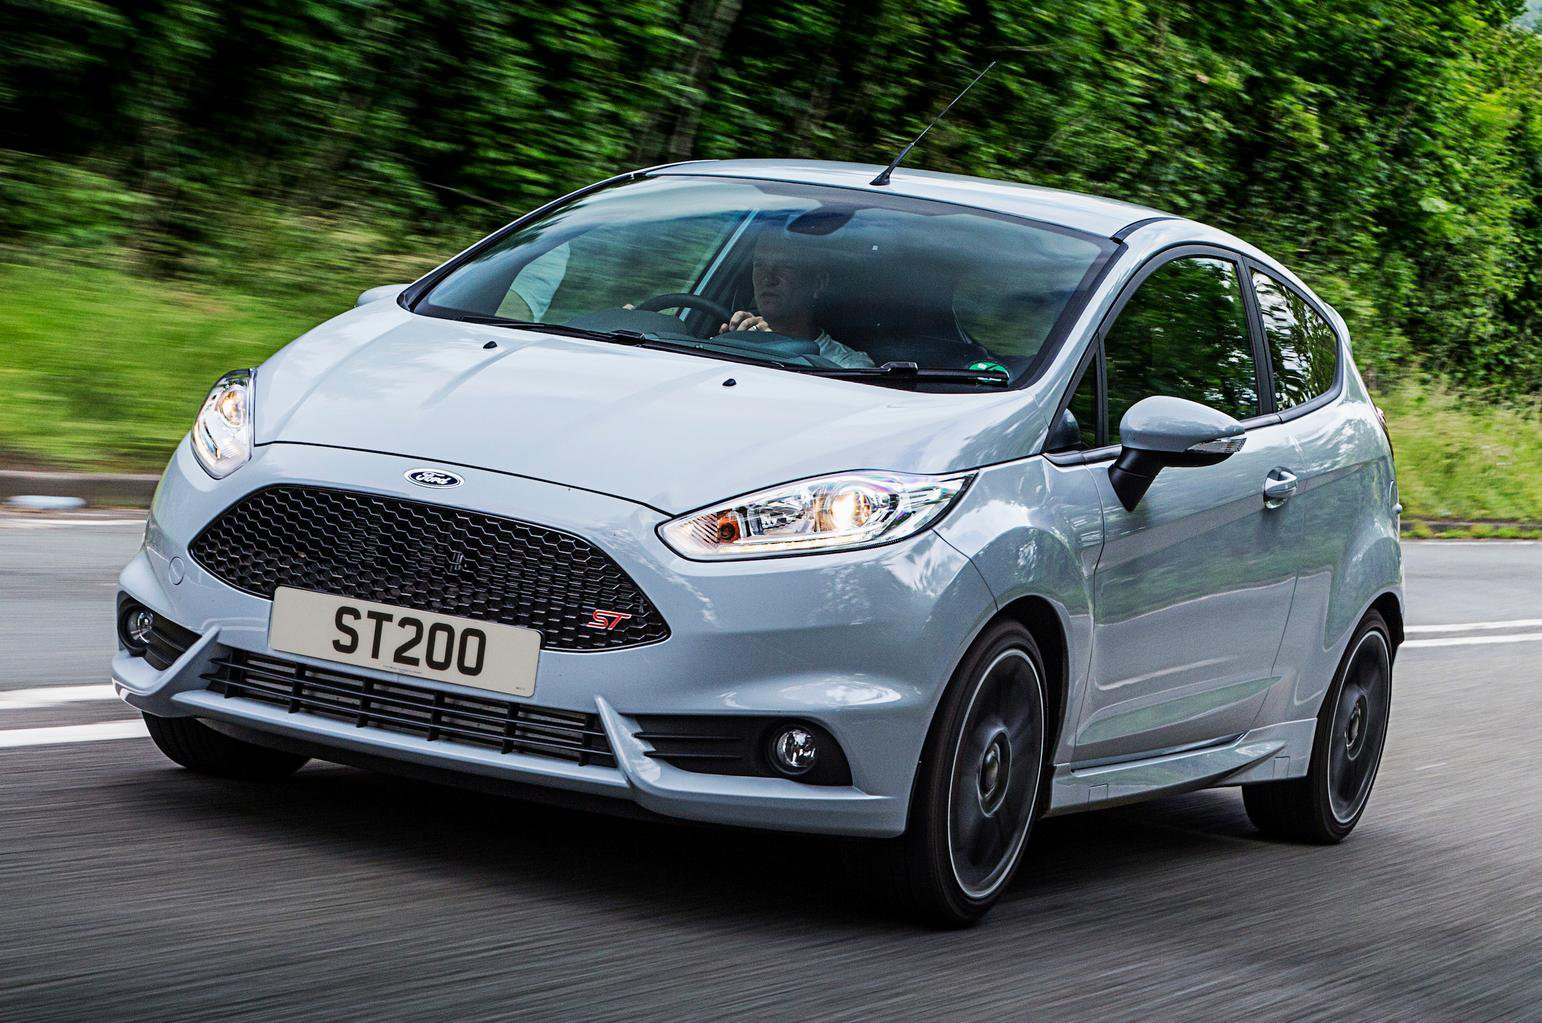 2016 Ford Fiesta ST200 review | What Car?